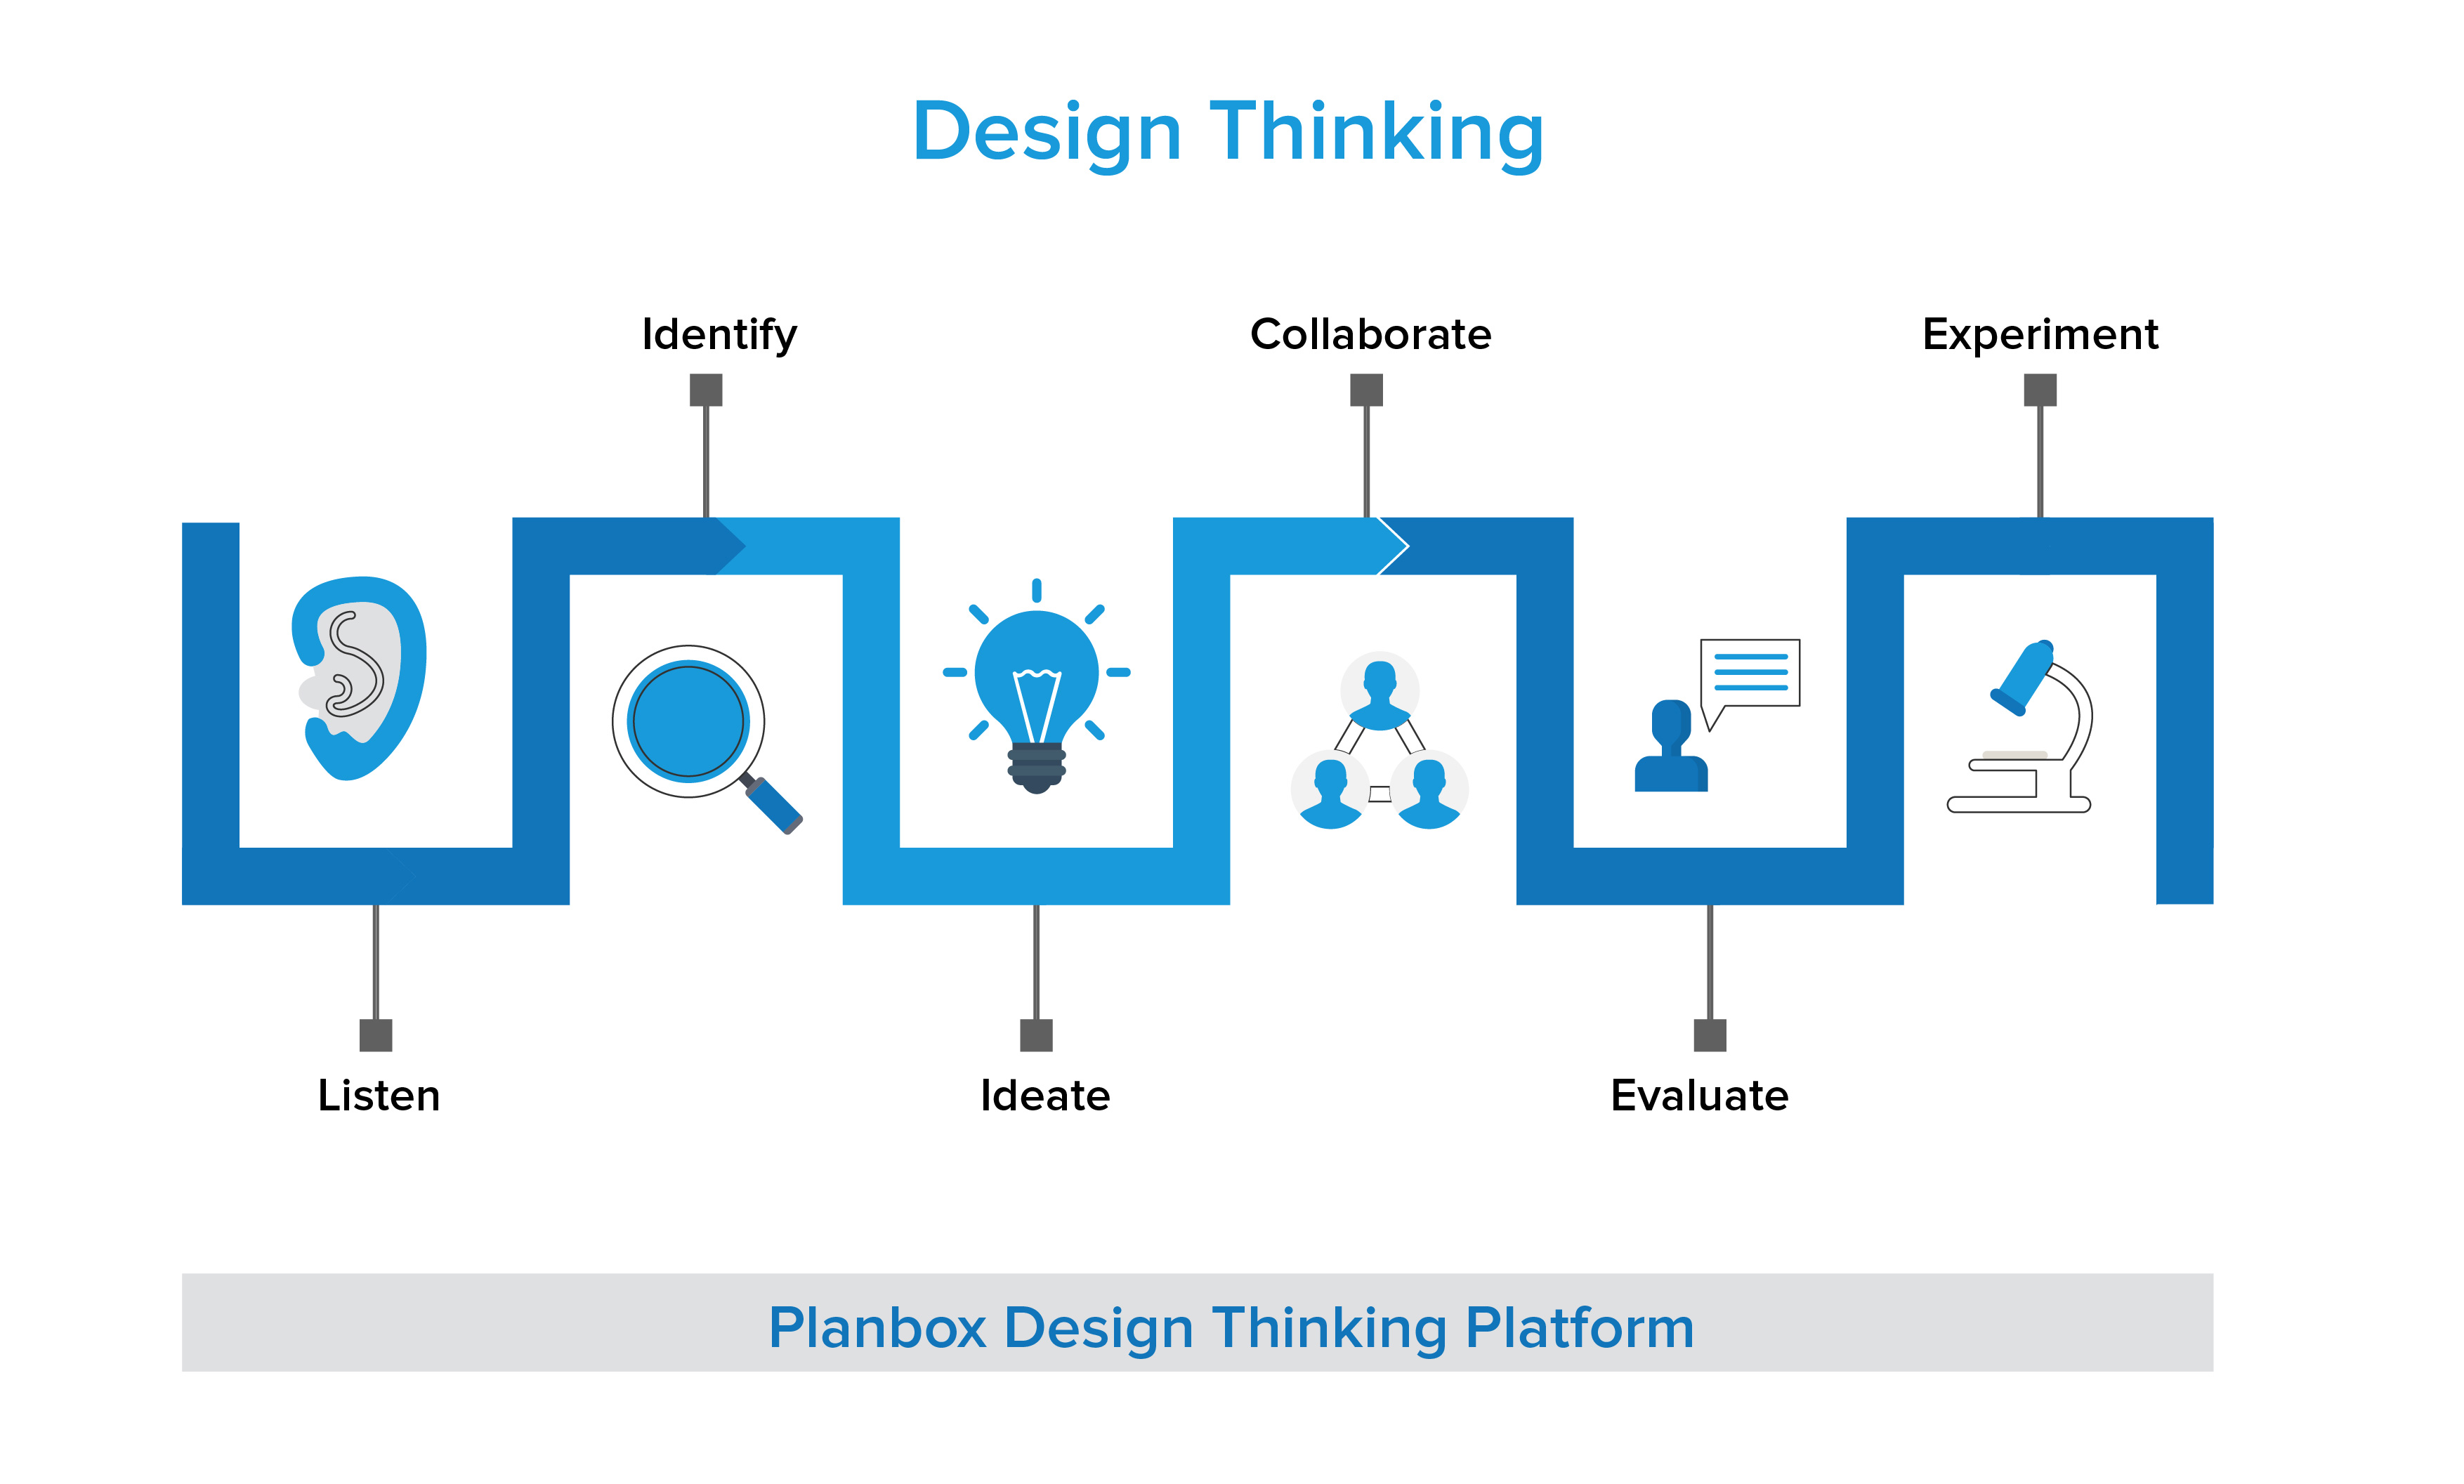 Planbox Design Thinking Platform